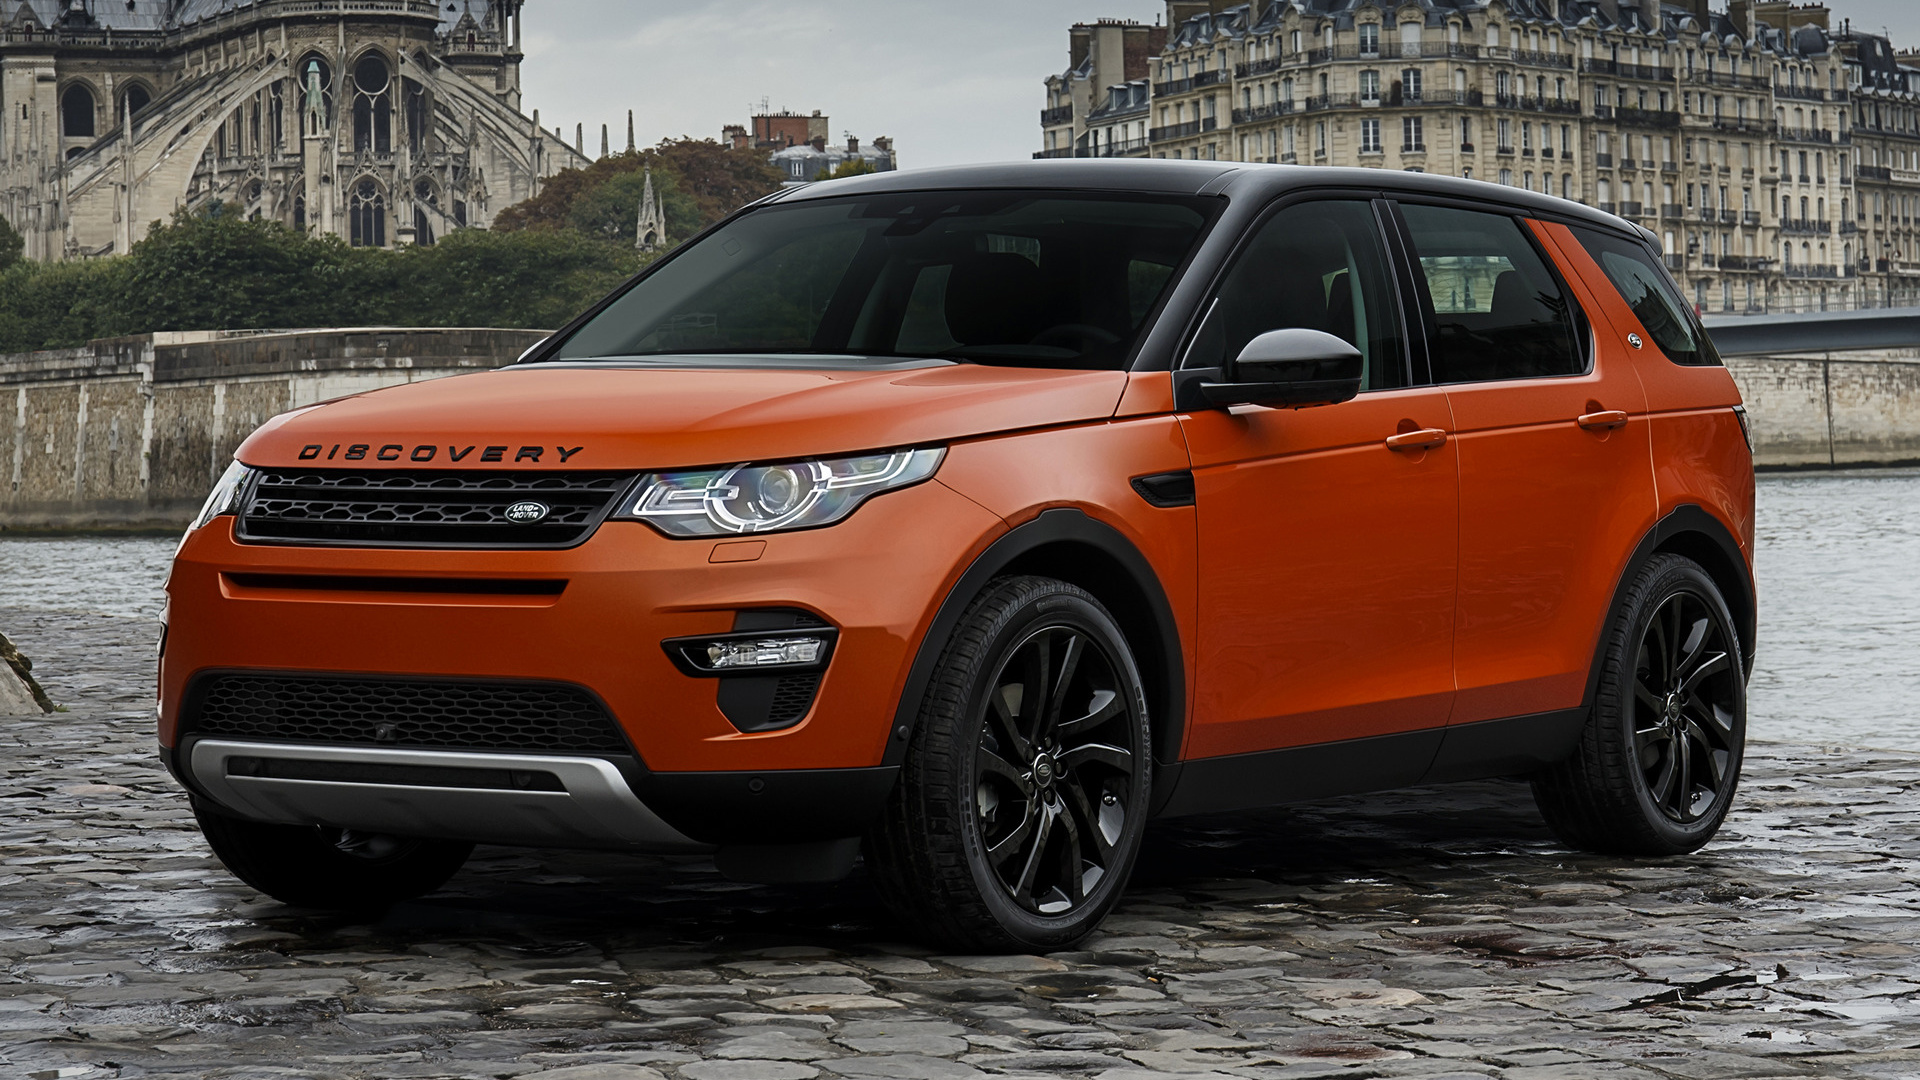 Land Rover Discovery Sport >> Land Rover Discovery Sport HD Wallpapers